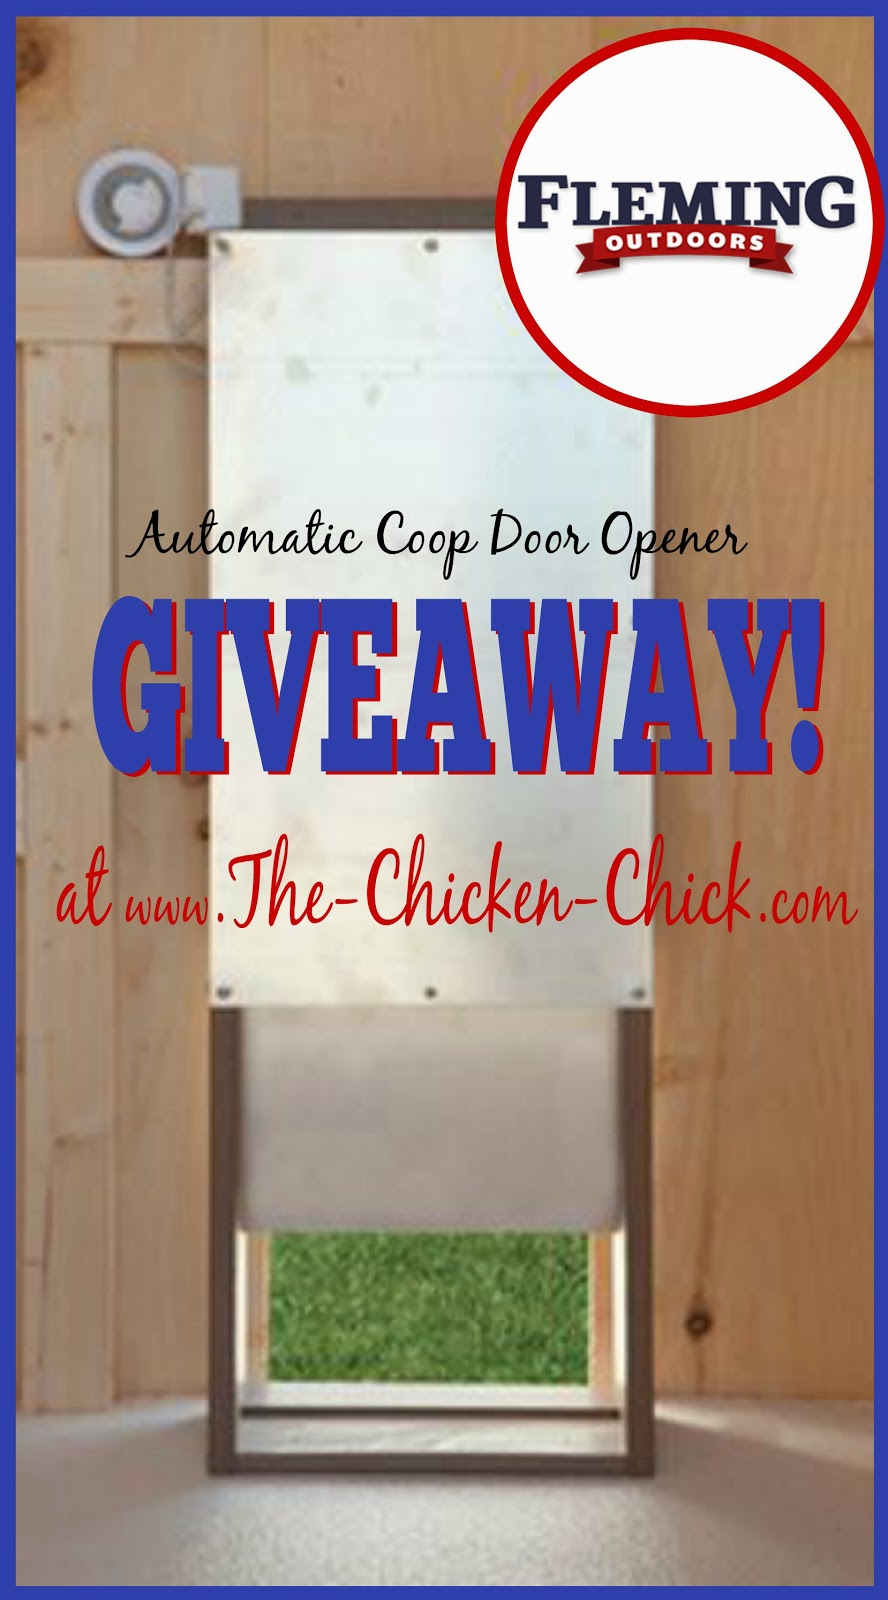 Giveaway of an Automatic Chicken Coop Door Opener, courtesy of Fleming